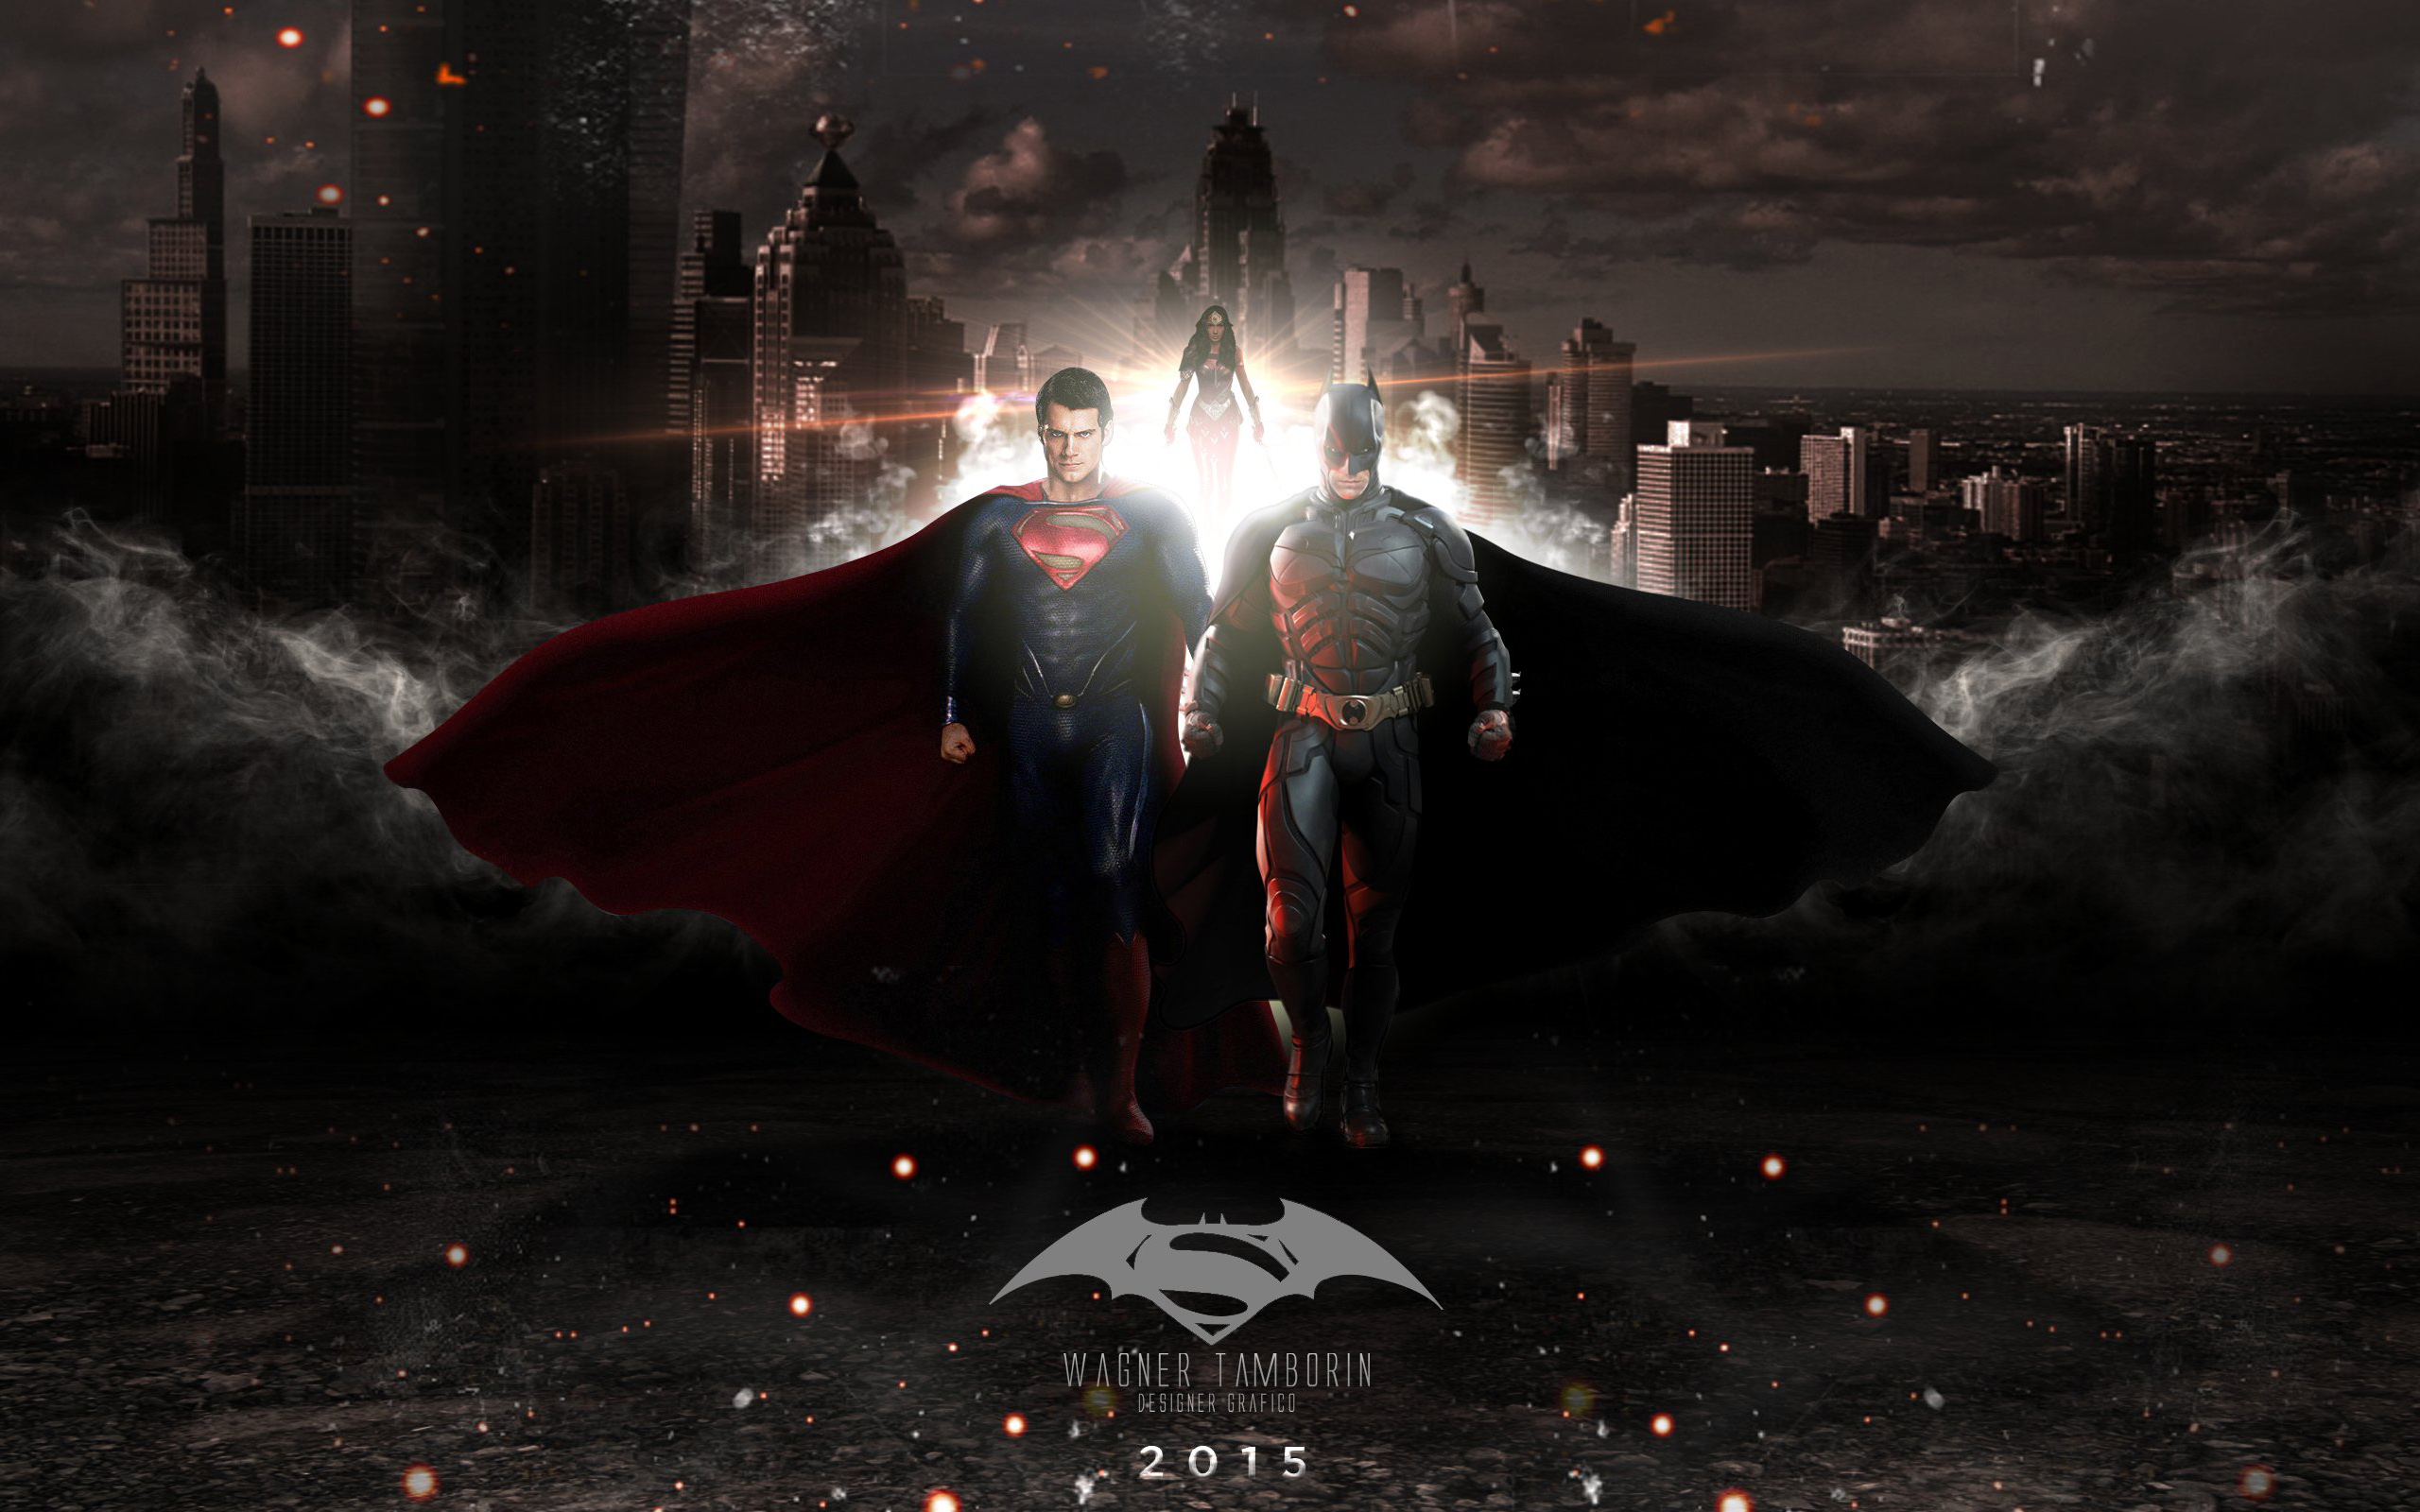 BATMAN VS SUPERMAN WALLPAPERS FREE Wallpapers Background images 2560x1600